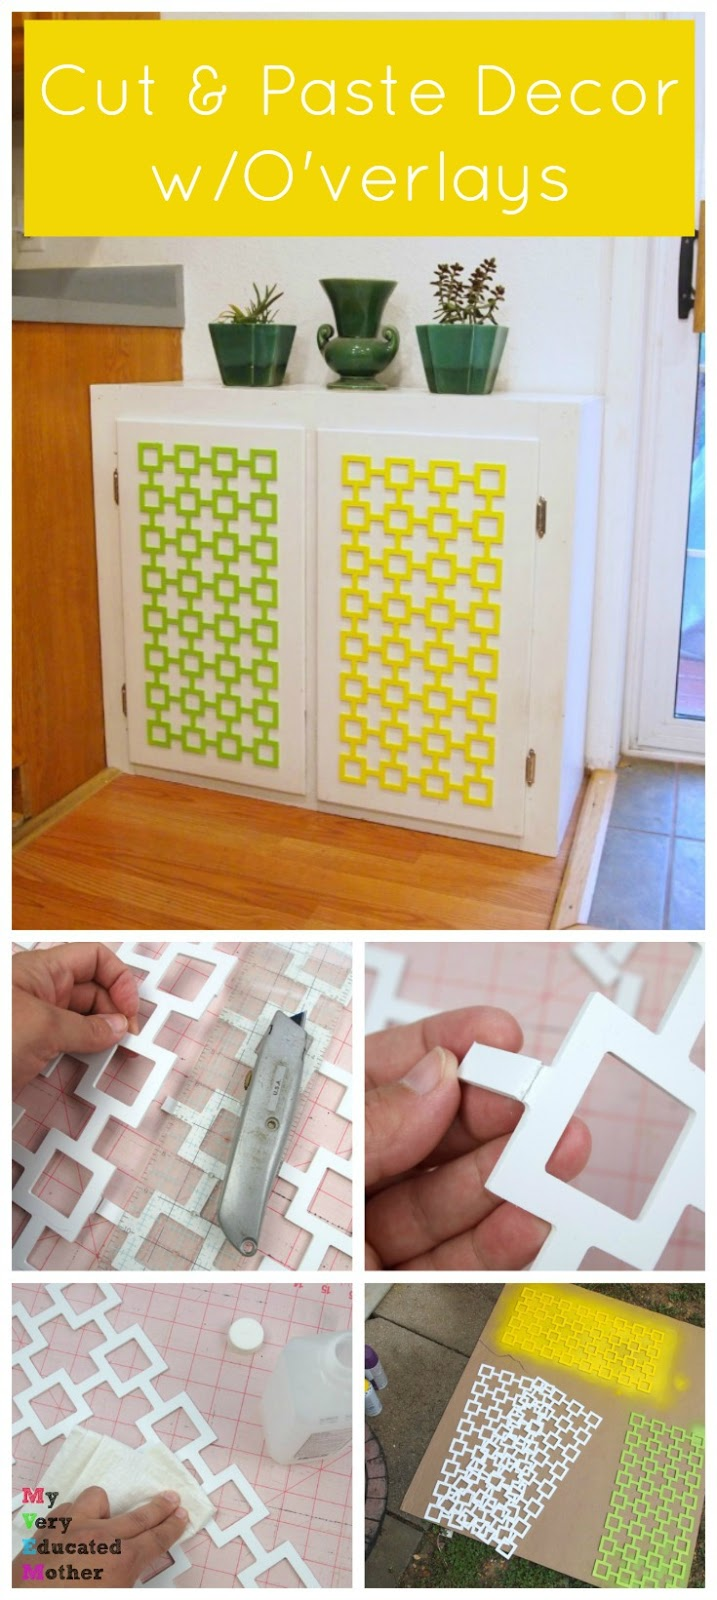 Cut and Paste your next home decor project with O'verlays!